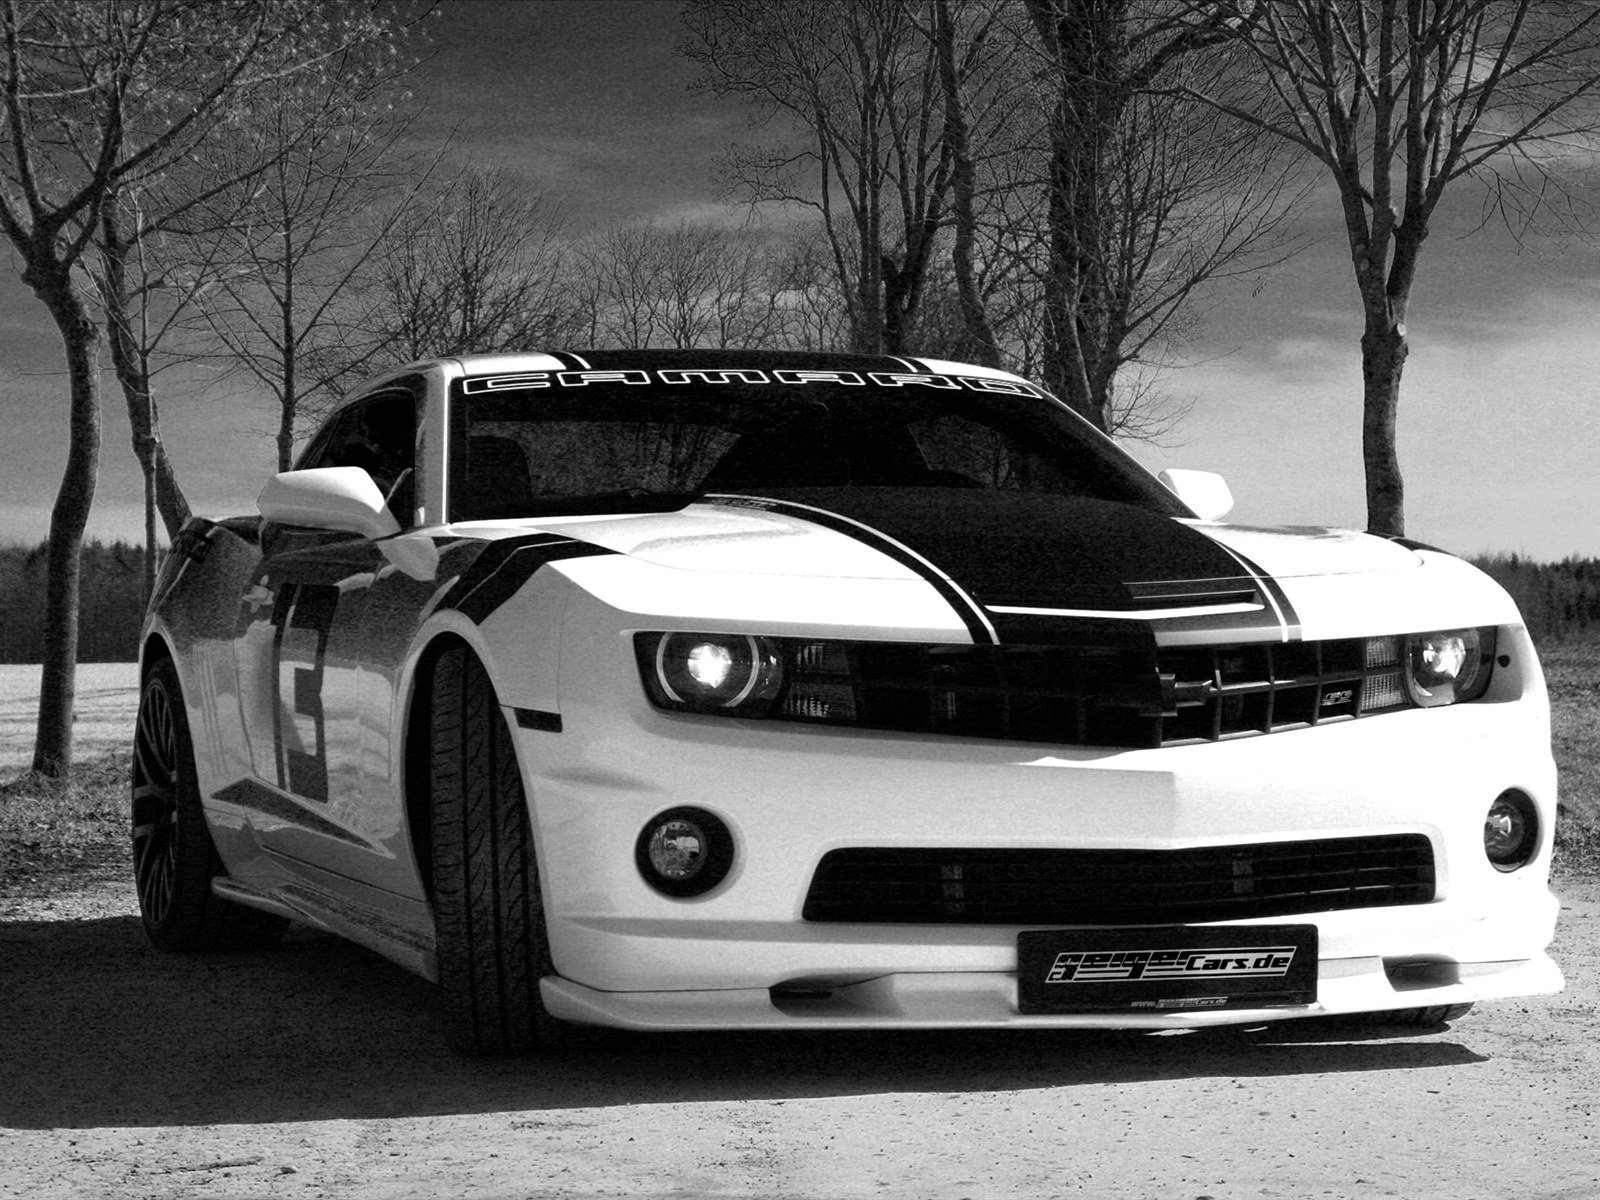 chevrolet wallpapers high resolution pictures. chevrolet wallpapers high resolution pictures s